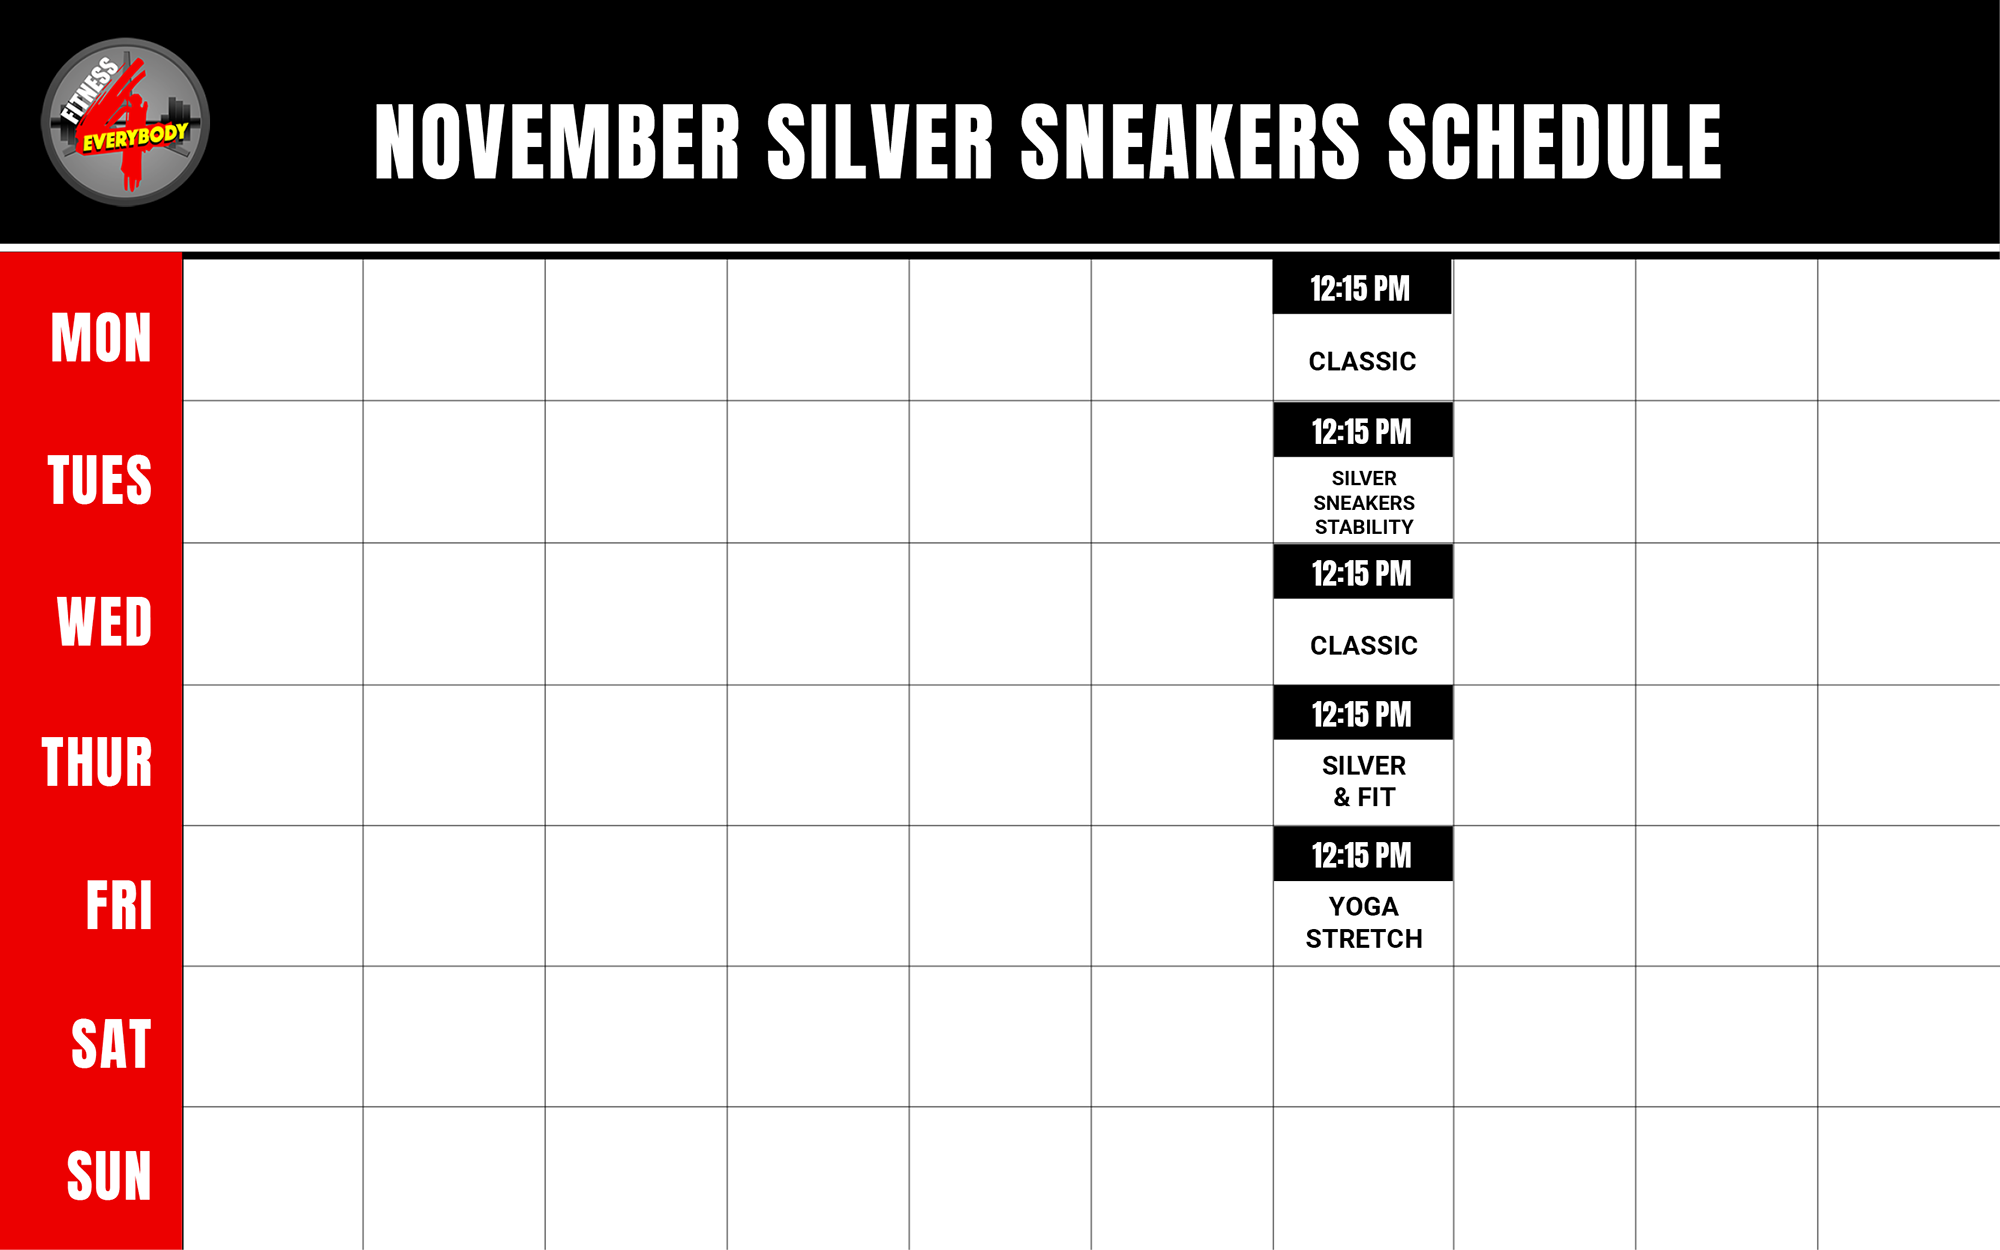 Silver Sneakers Class Schedule for November 2019